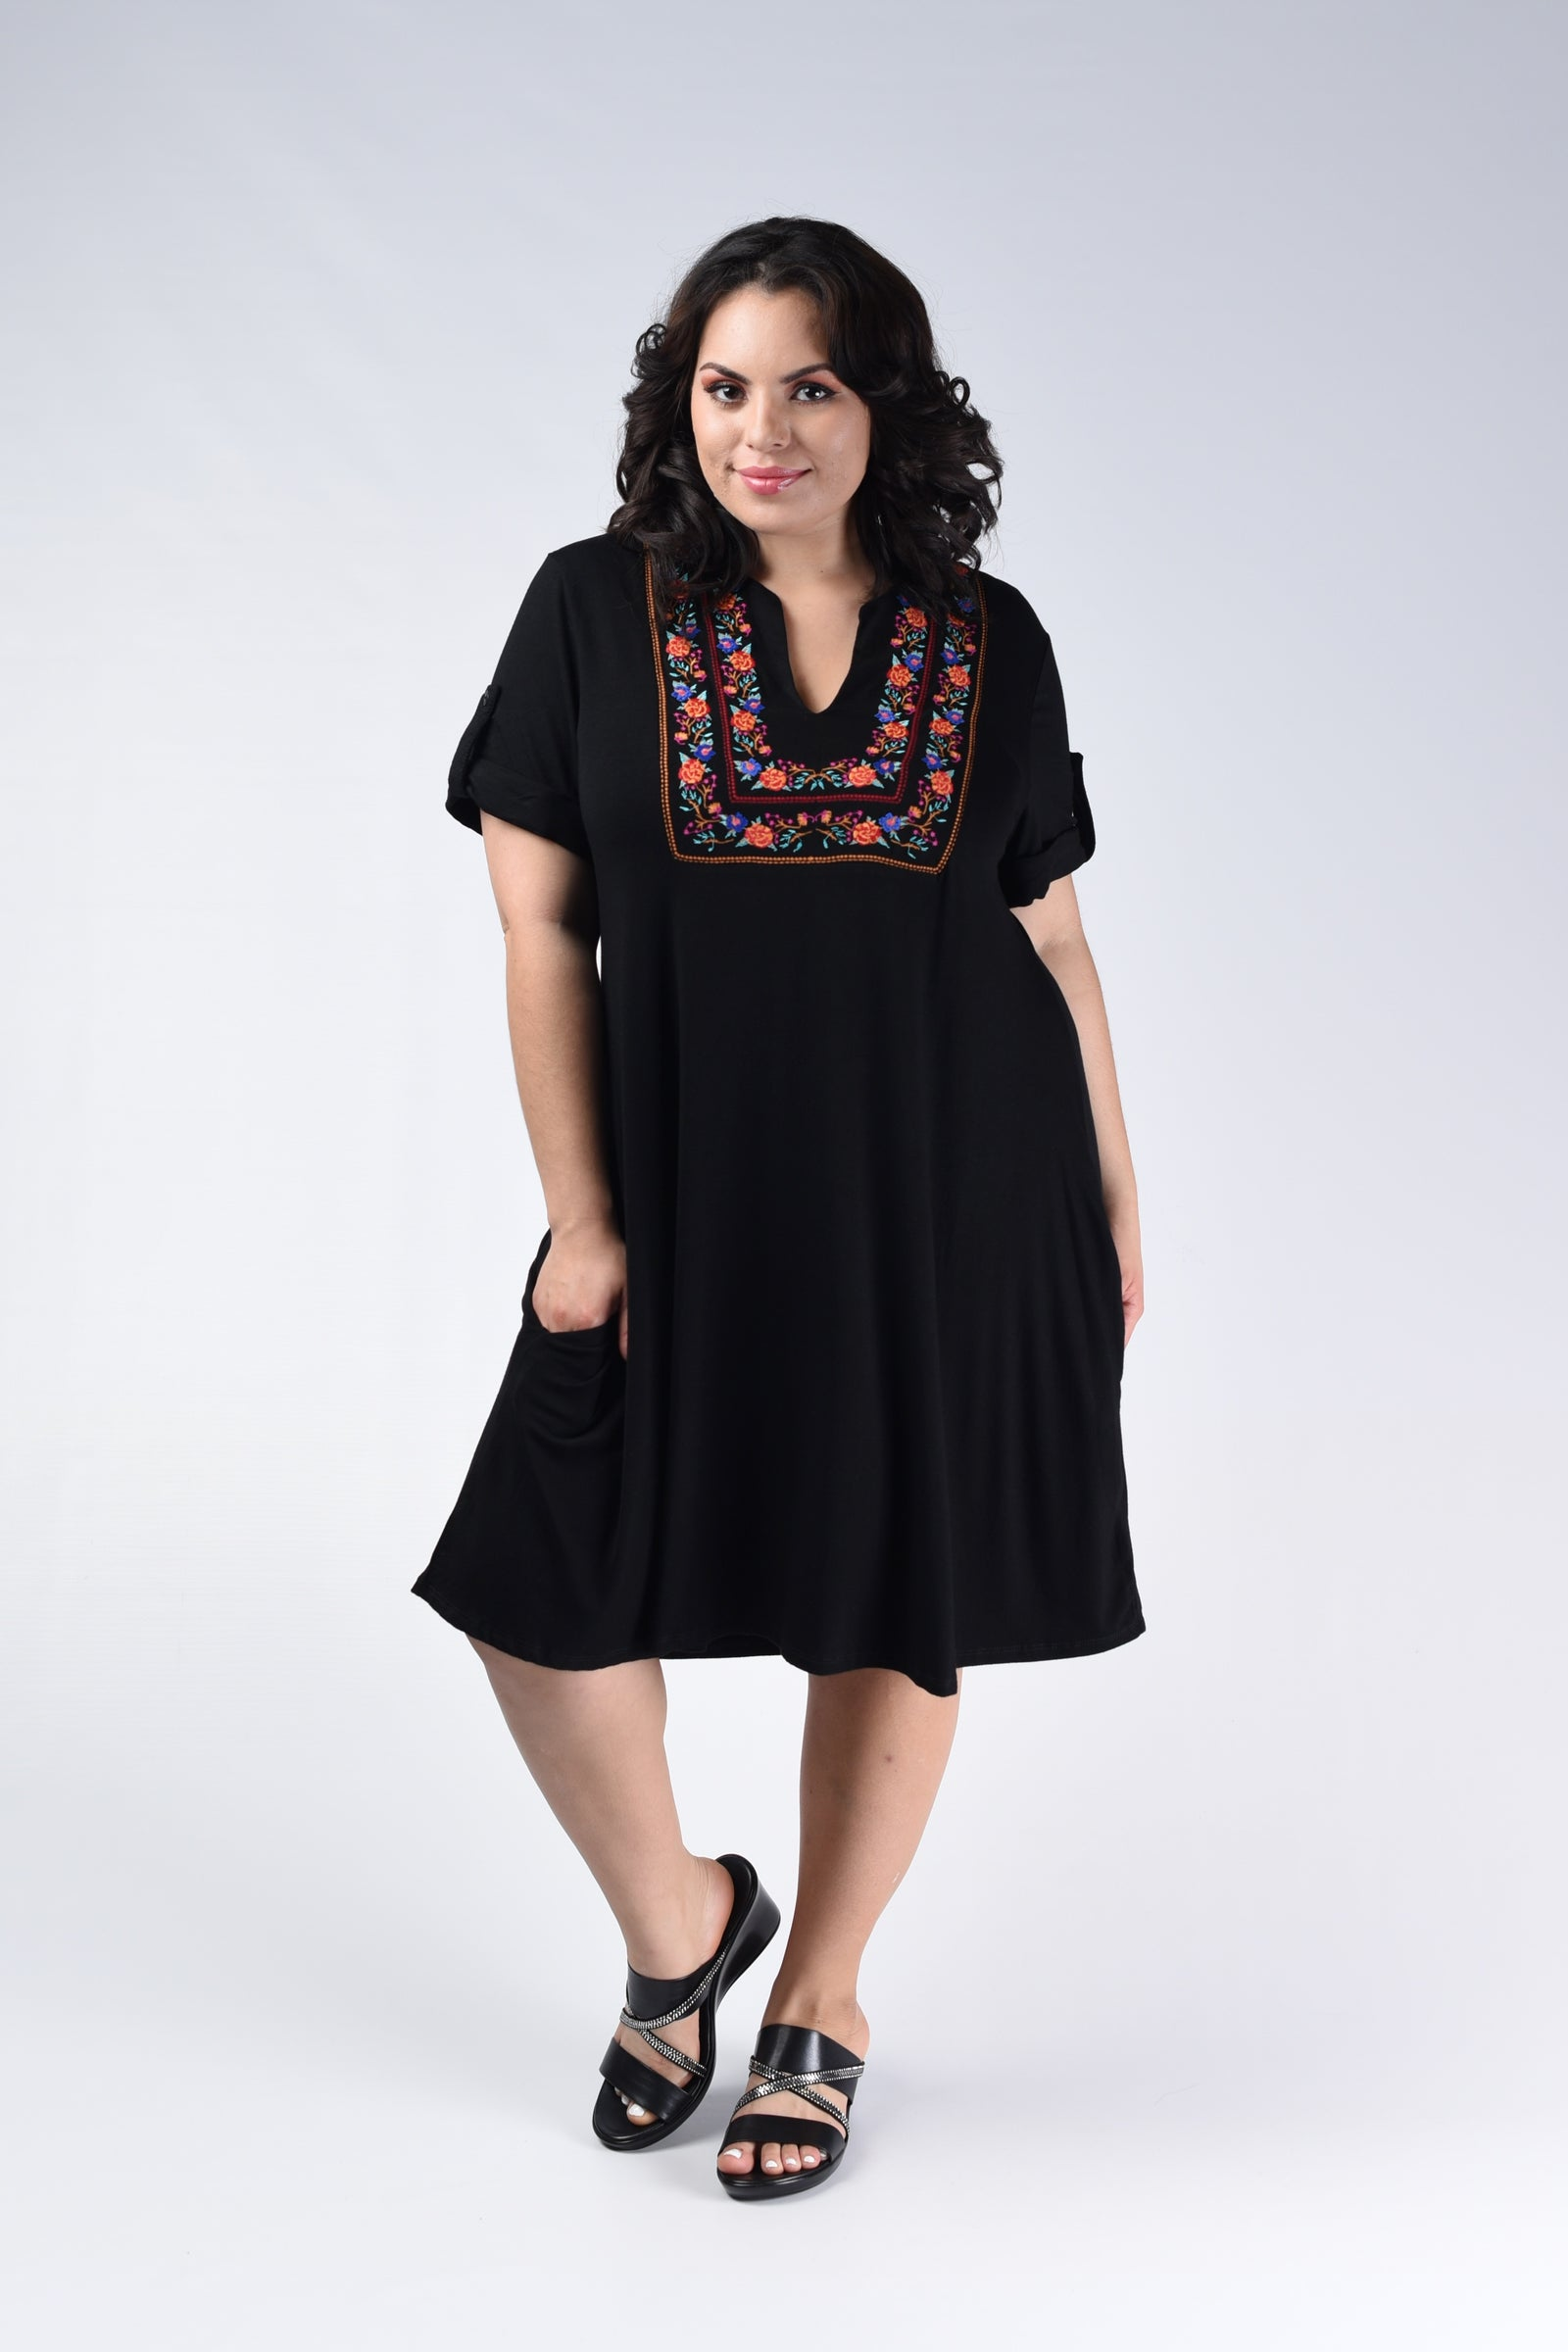 Black Embroidered Dress - www.mycurvystore.com - Curvy Boutique - Plus Size